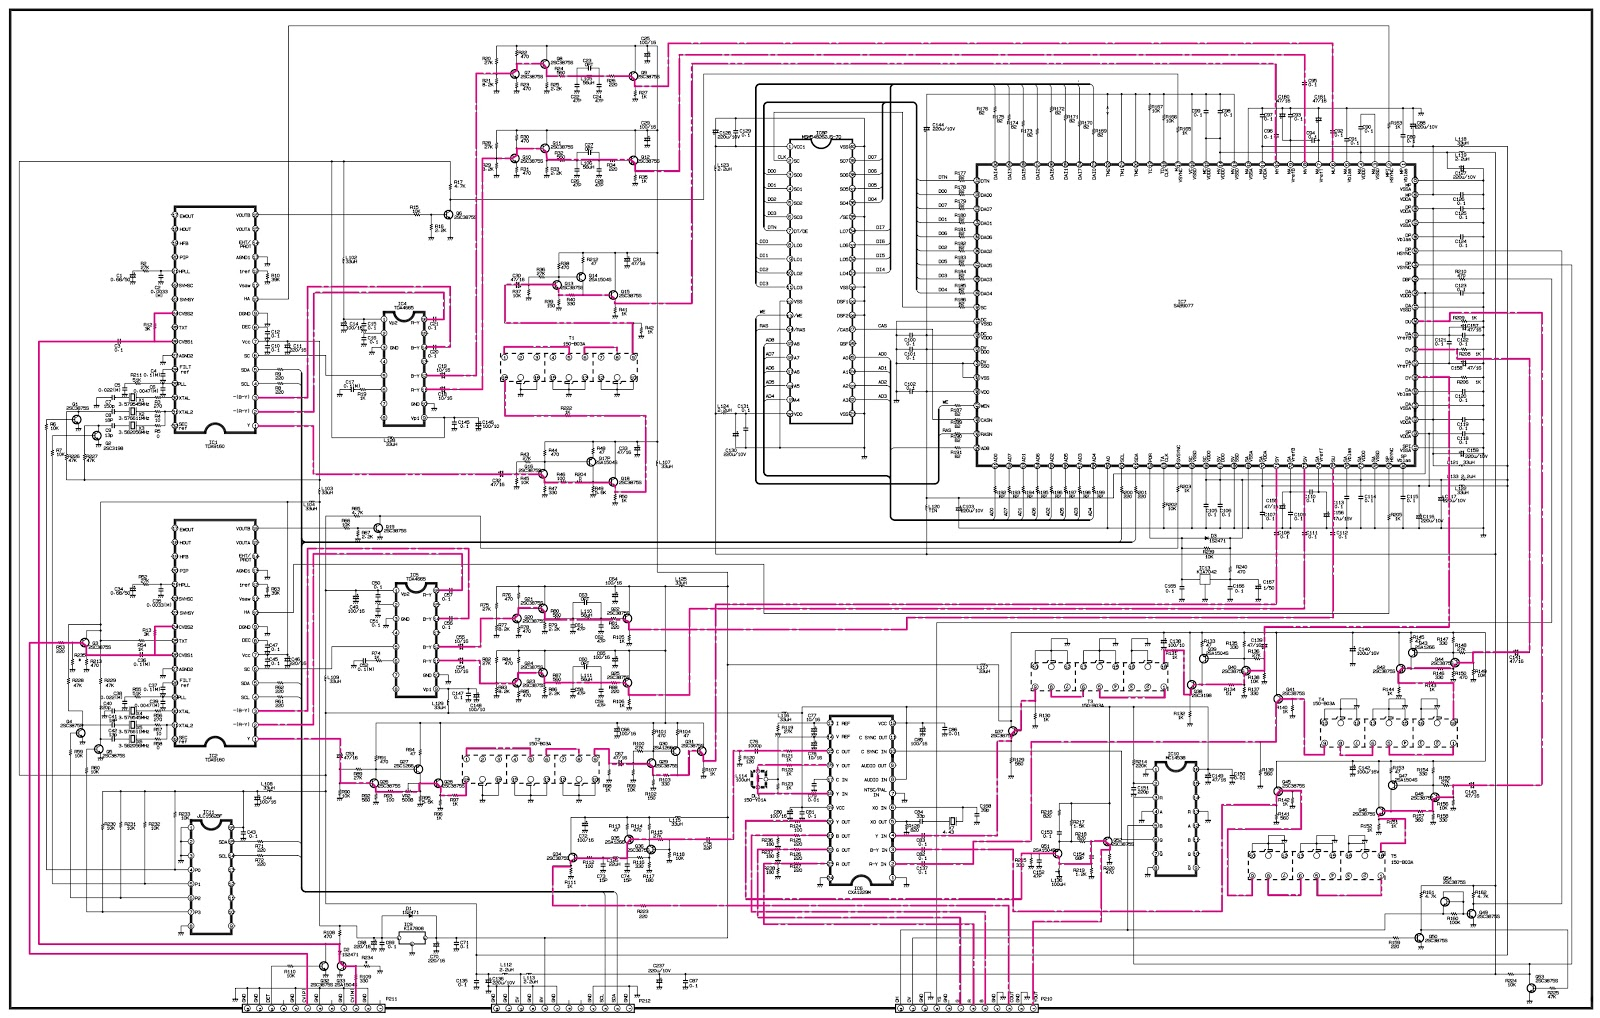 hight resolution of pip and vcr wiring diagram wiring diagram jvc car stereo wiring diagram jvc vcr wiring diagram